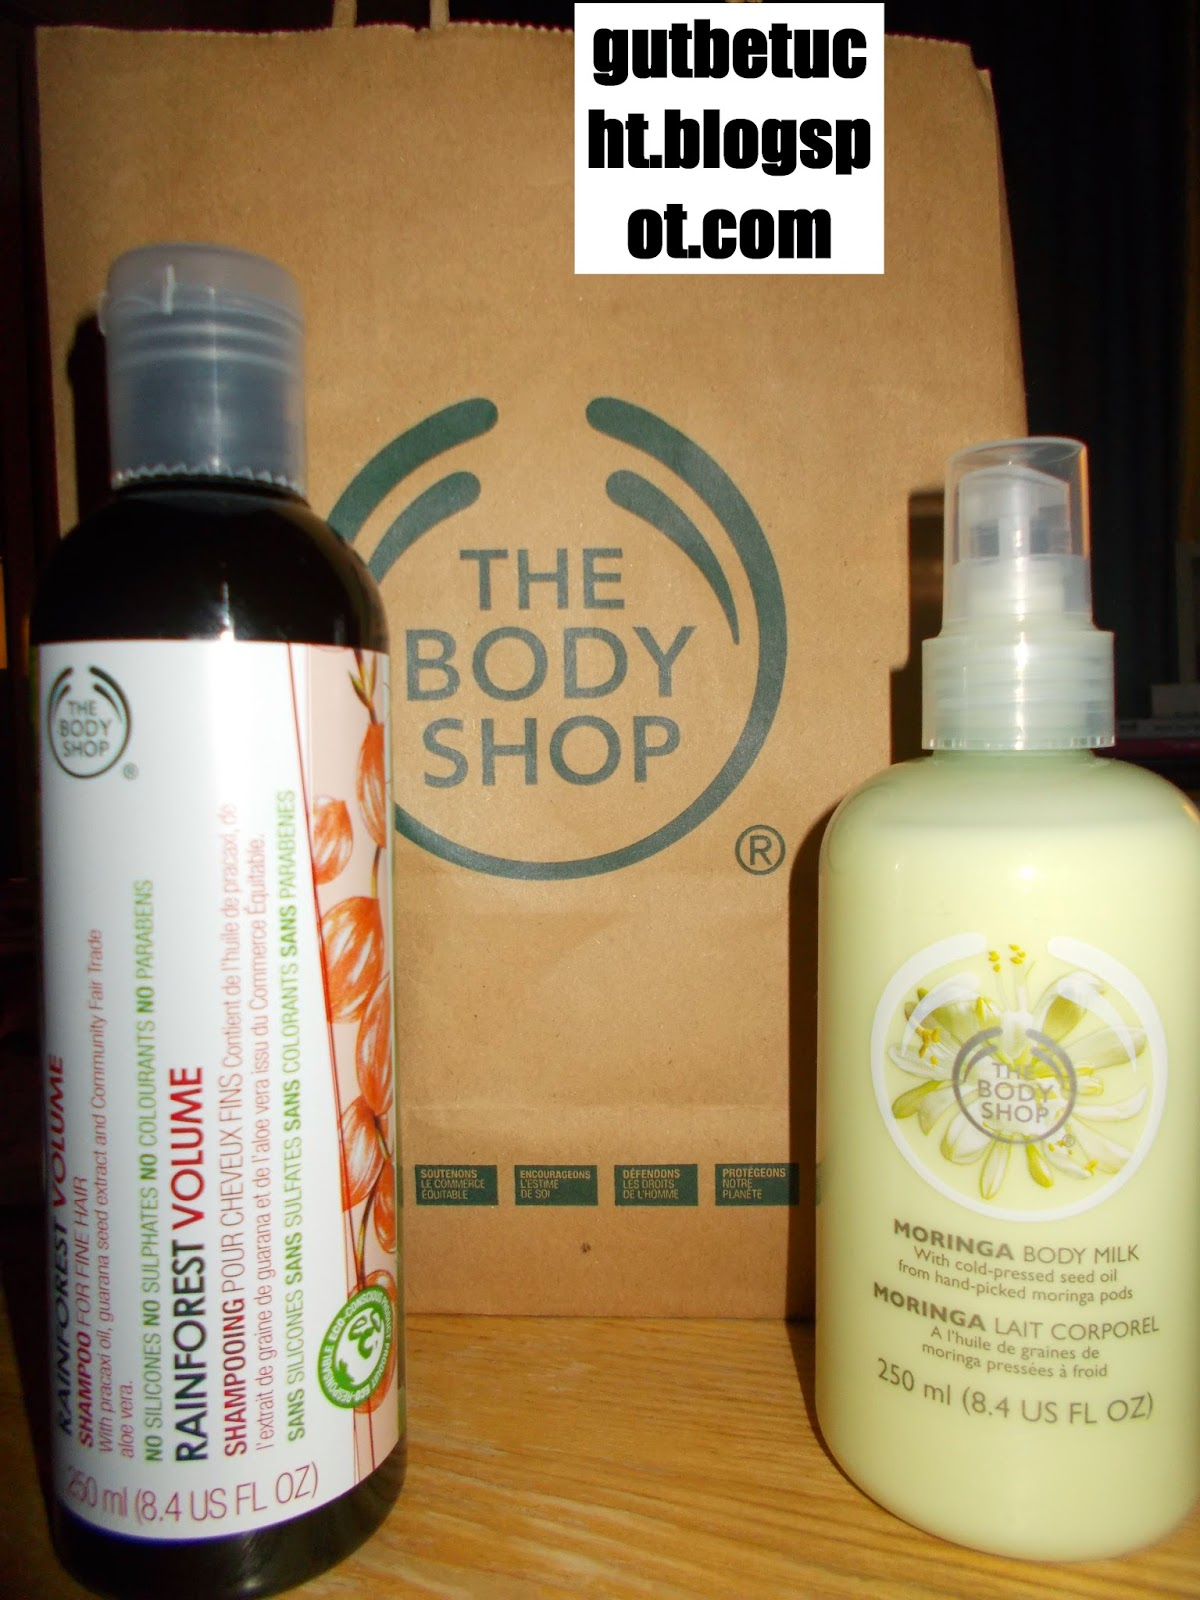 gutbetucht review body shop bio fairtrade shampoo review the body shop organic fairtrade. Black Bedroom Furniture Sets. Home Design Ideas